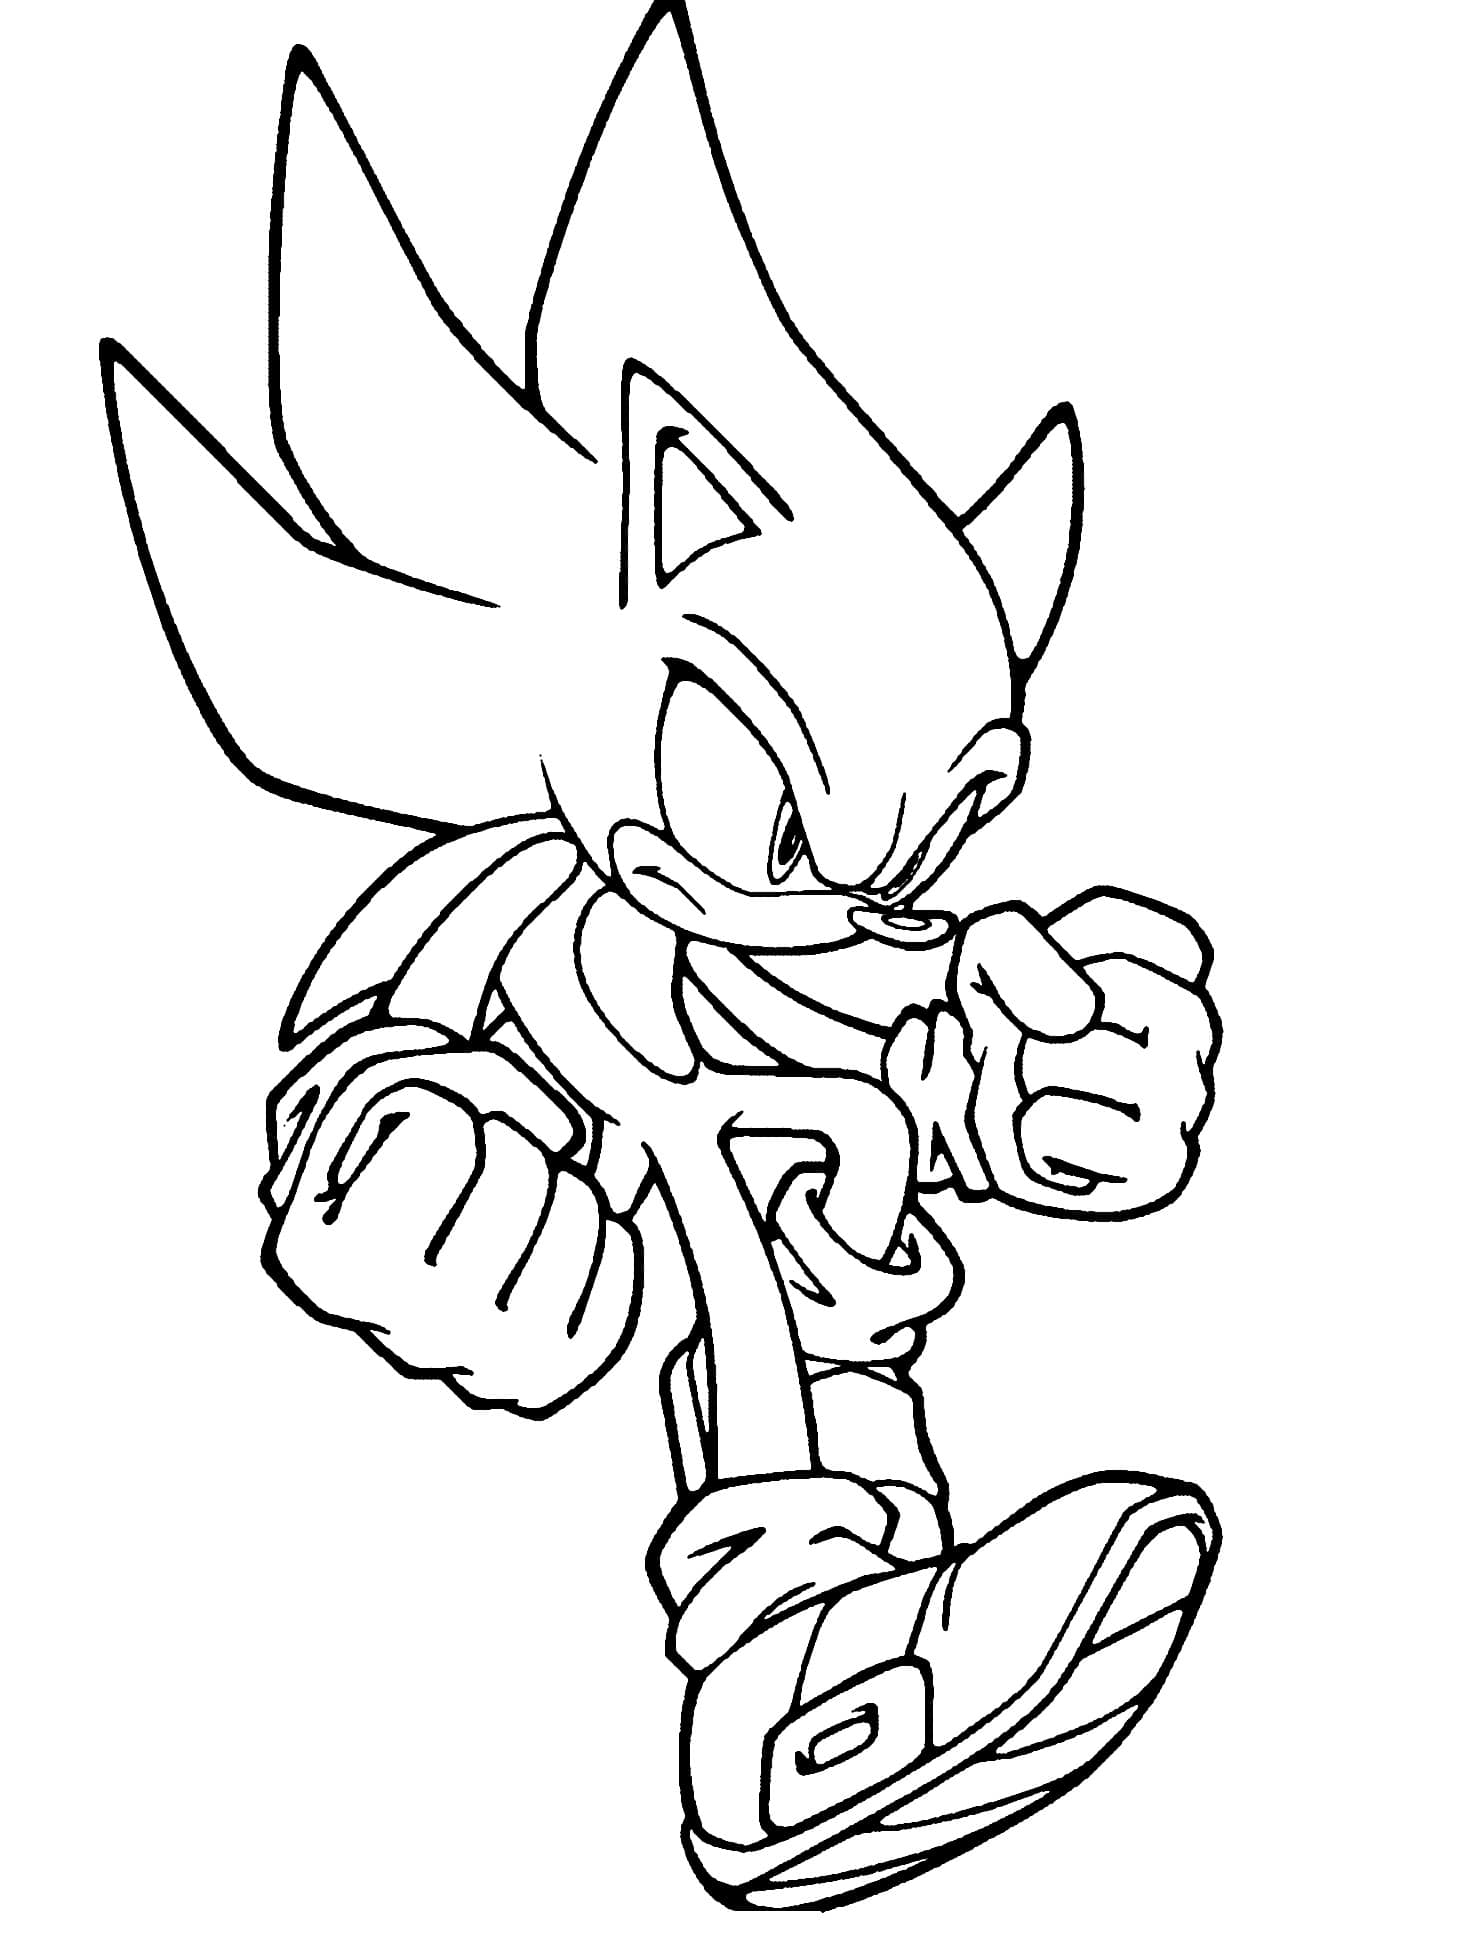 Sonic Coloring Pages. 118 New Pictures. Free Printable